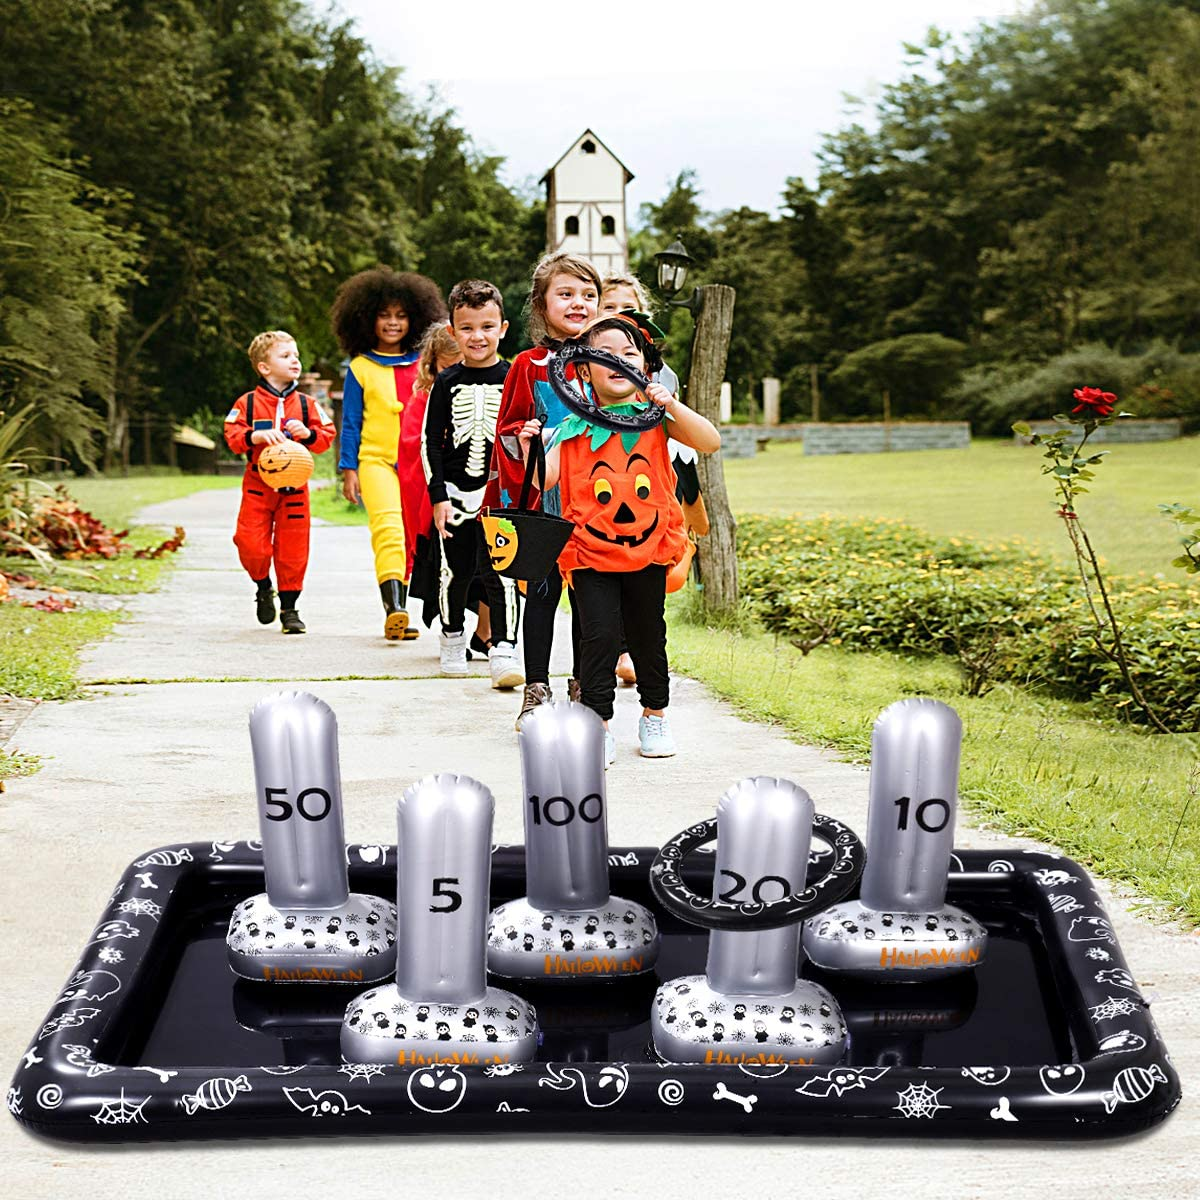 Halloween Ring Toss Set 5 Inflatable Tombstones Halloween Party Favor Supplies Funny Game Educational Toy for Kids